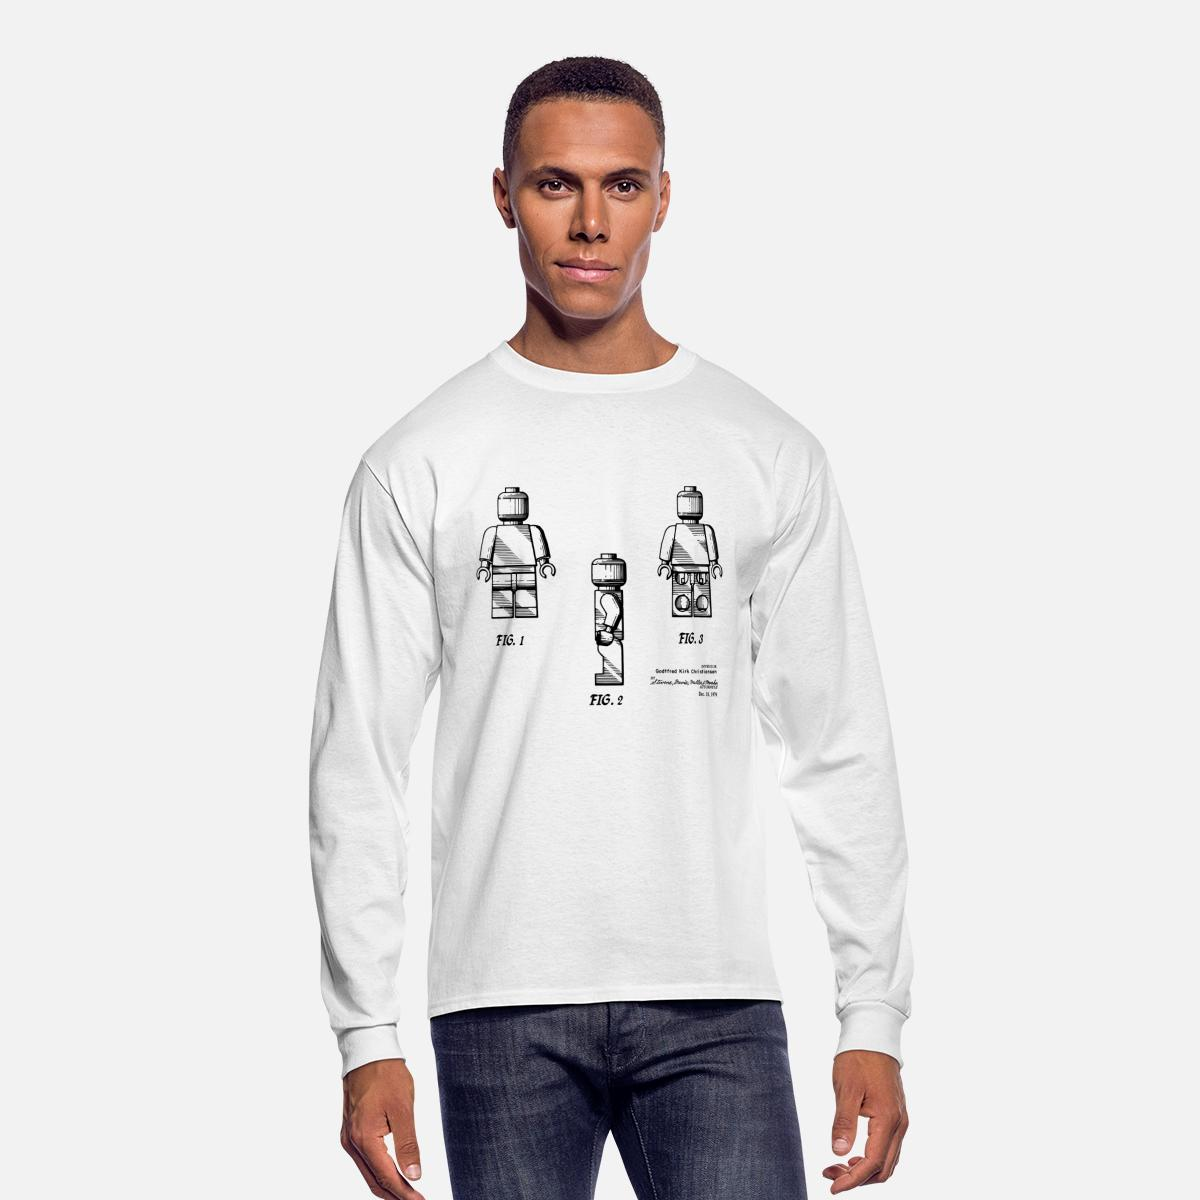 Lego Man Minifgure Patent Drawing Men's Long Sleeve T-Shirt - white